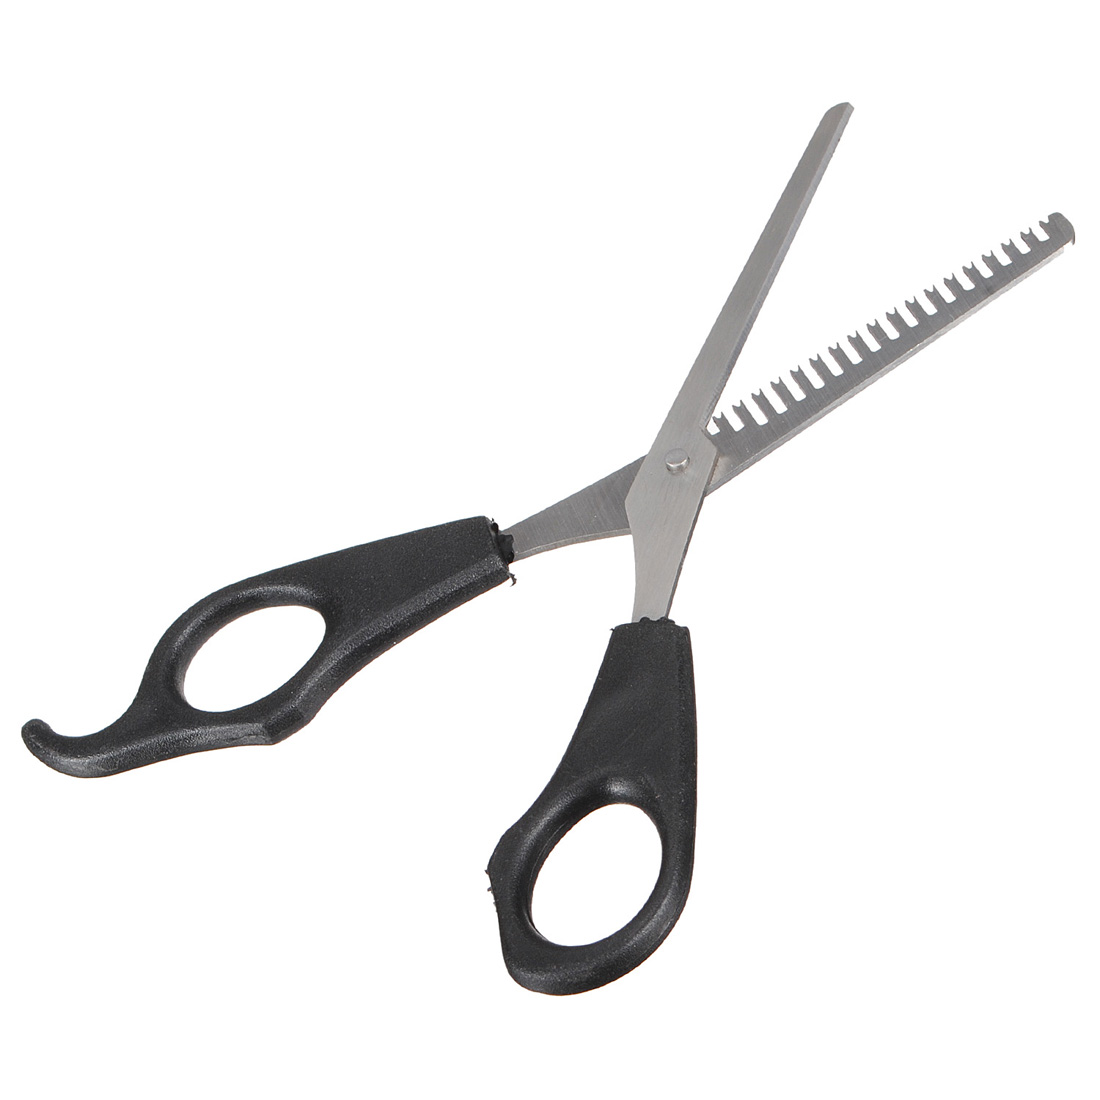 Pet Dog Cat Grooming Thinning Hair Tooth Shears Scissor